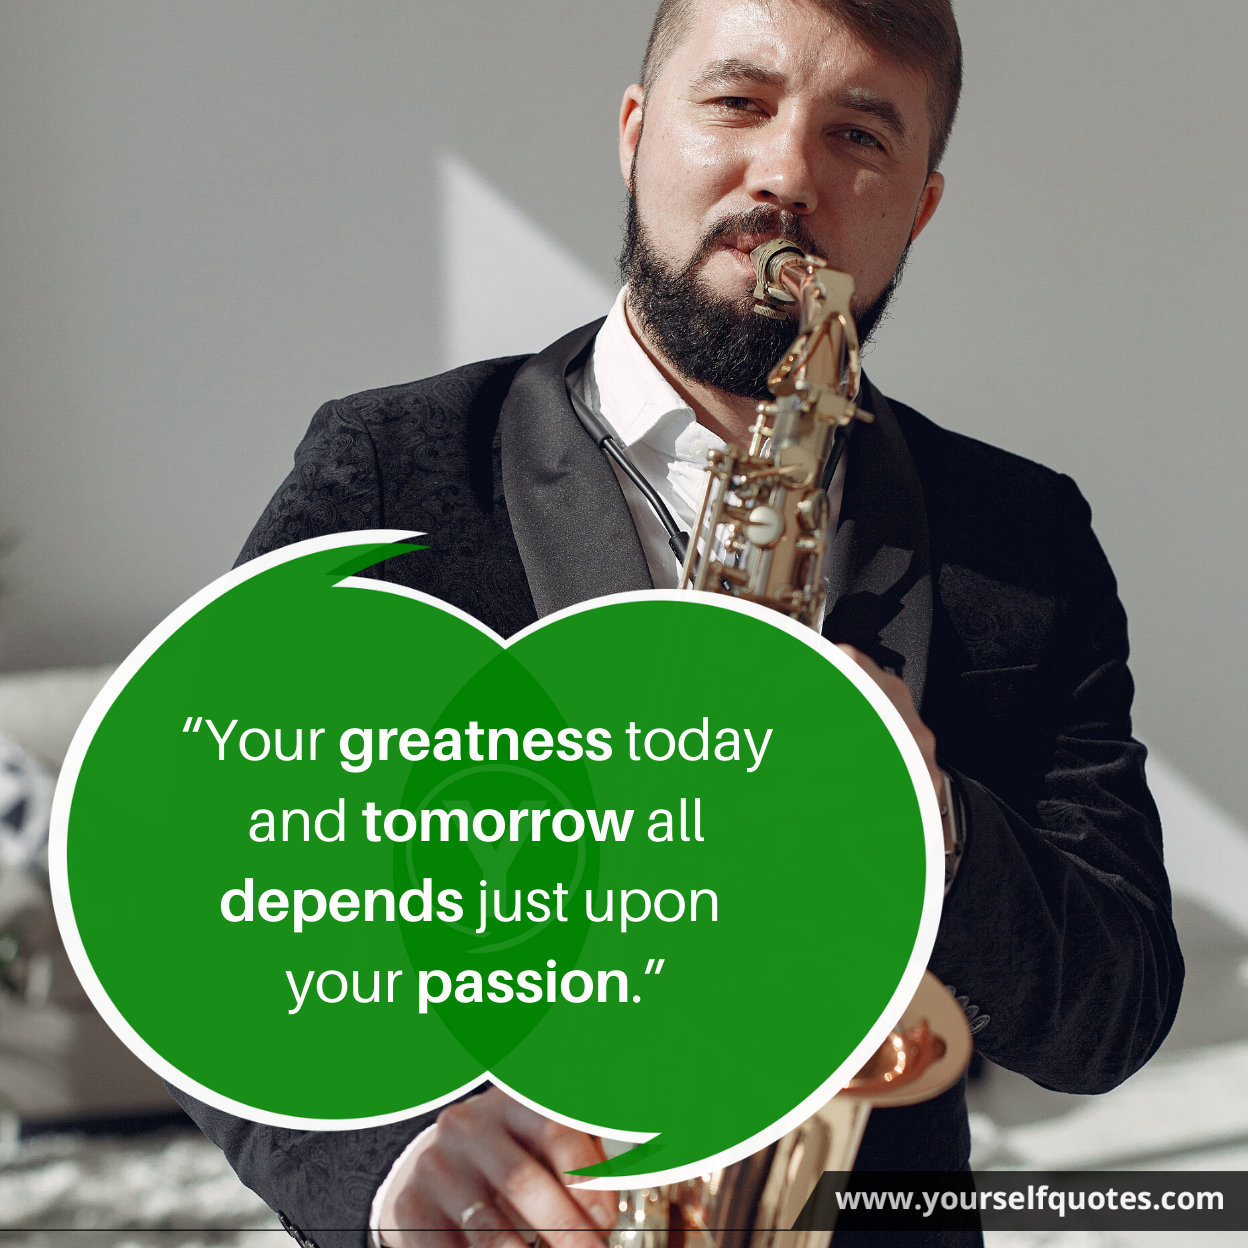 Quotes on Passion for Work